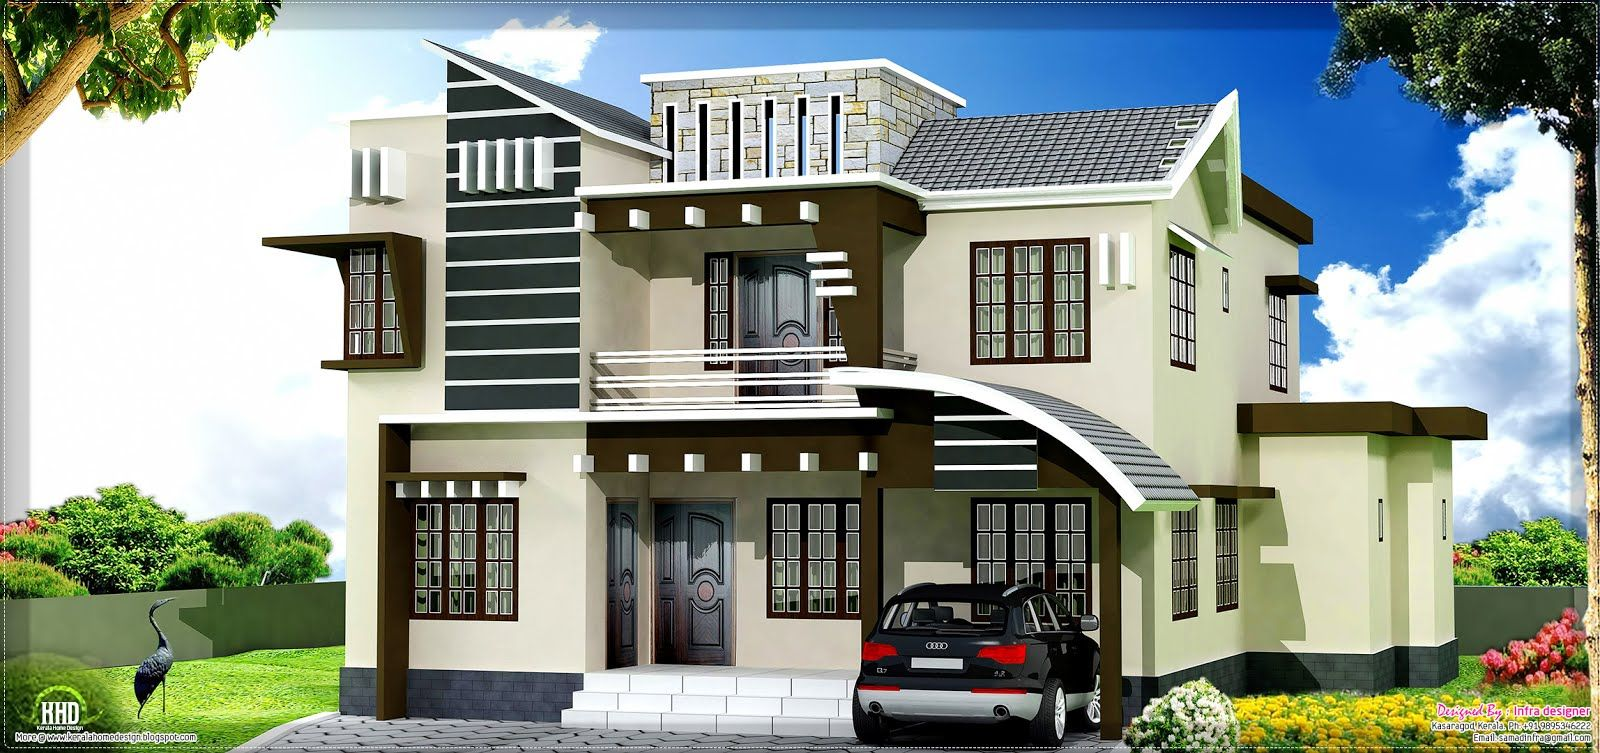 Cool Contemporary Home Designs India Stylendesigns Com Exterior Designs Pinterest Indian House Plans Indian House And Exterior Design